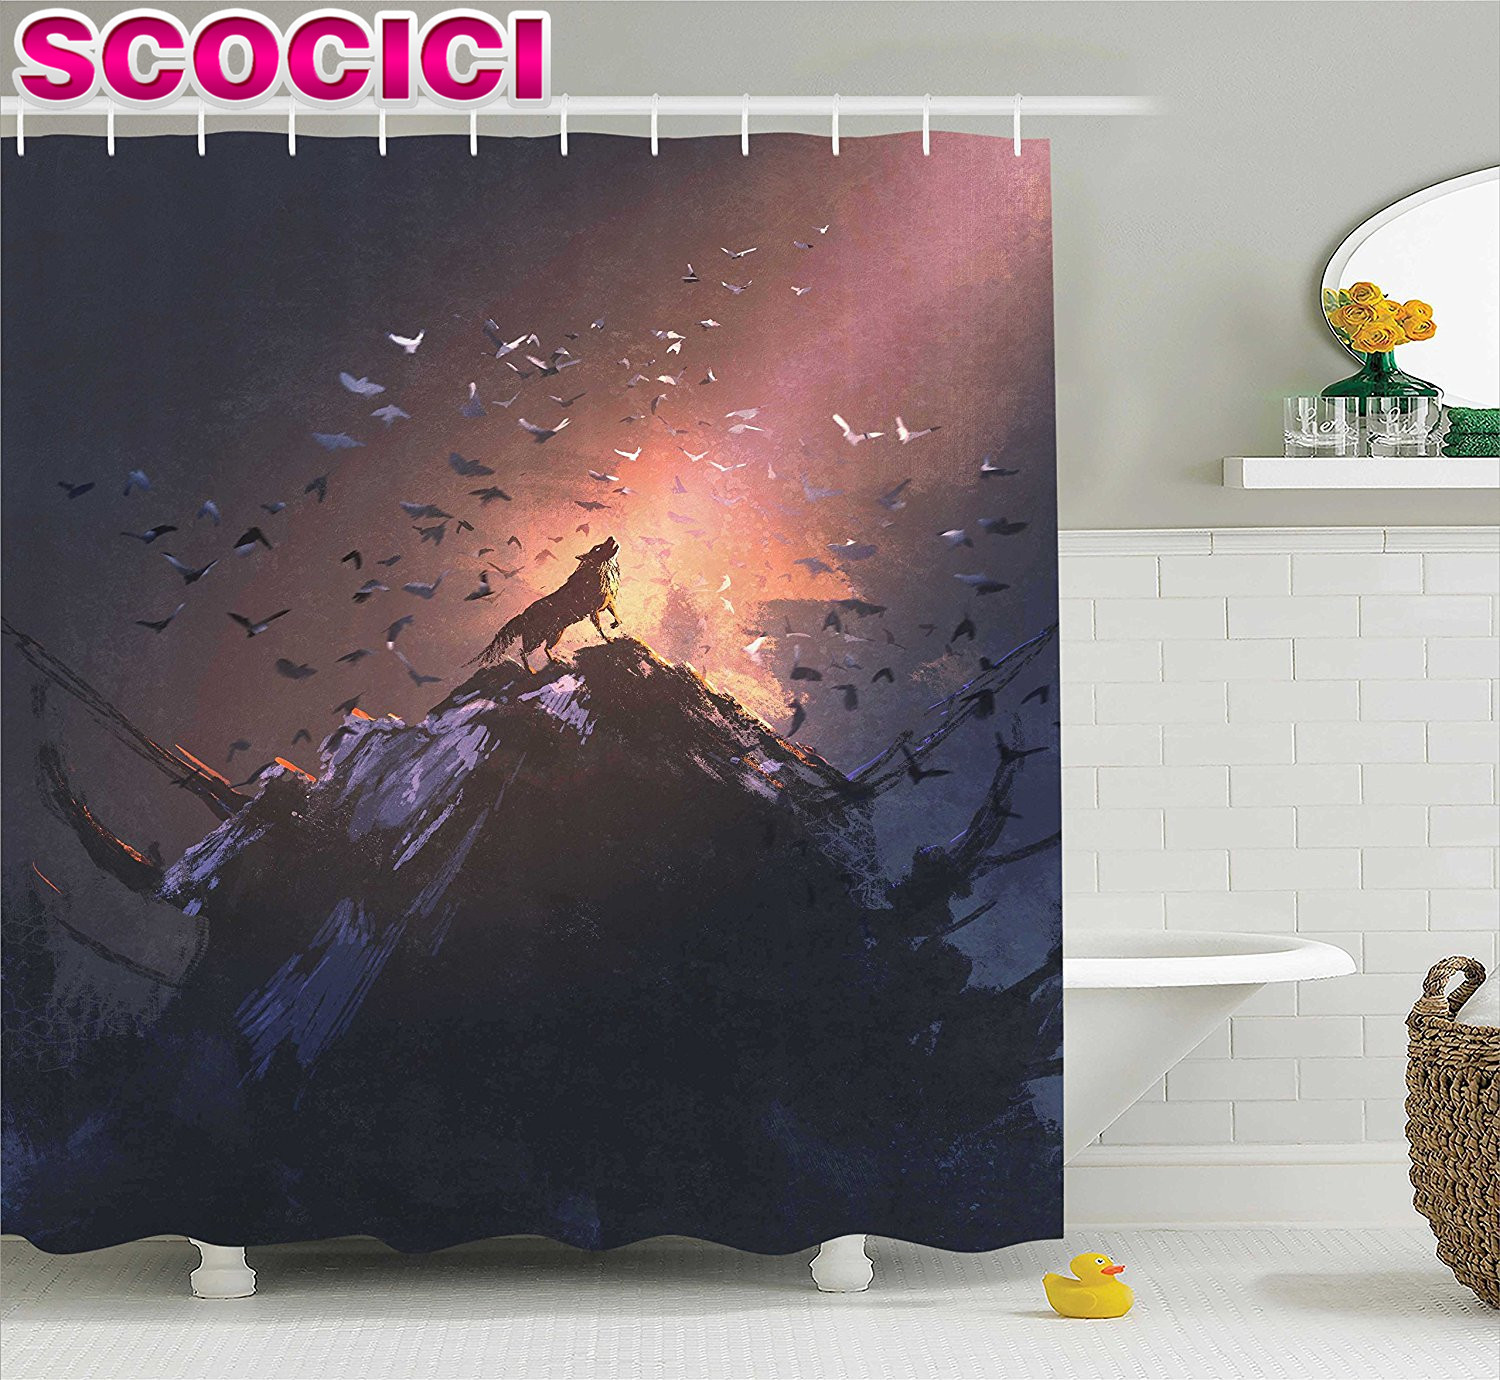 Scary shower curtain - Fantasy World Decor Shower Curtain Set Howling Wolf On A Rock Surrounded By Bats Birds Scary